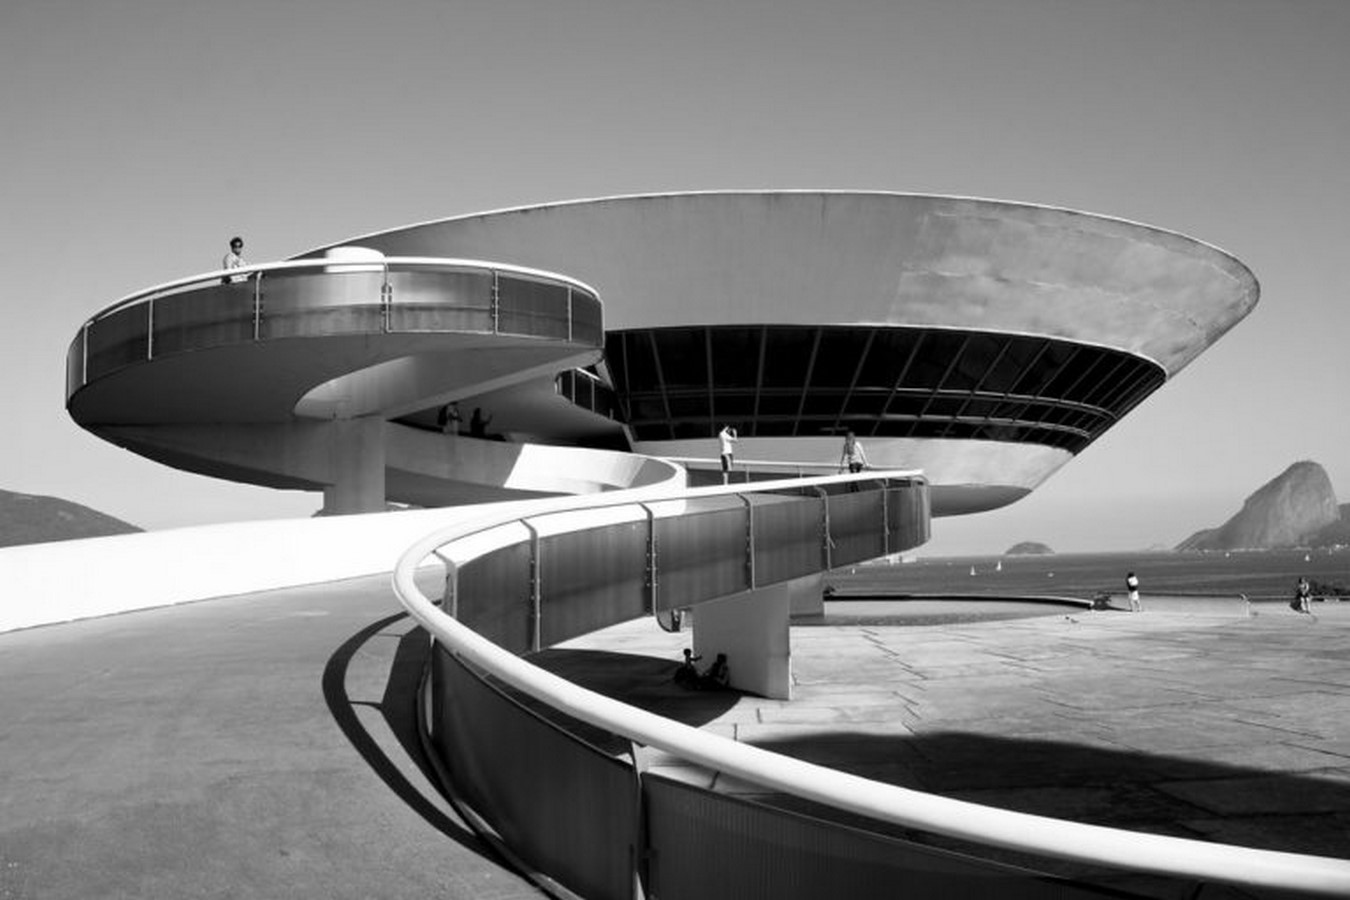 Niterói Contemporary Art Museum by Oscar Niemeyer: Iconic Saucer-Shaped Structure Sheet6